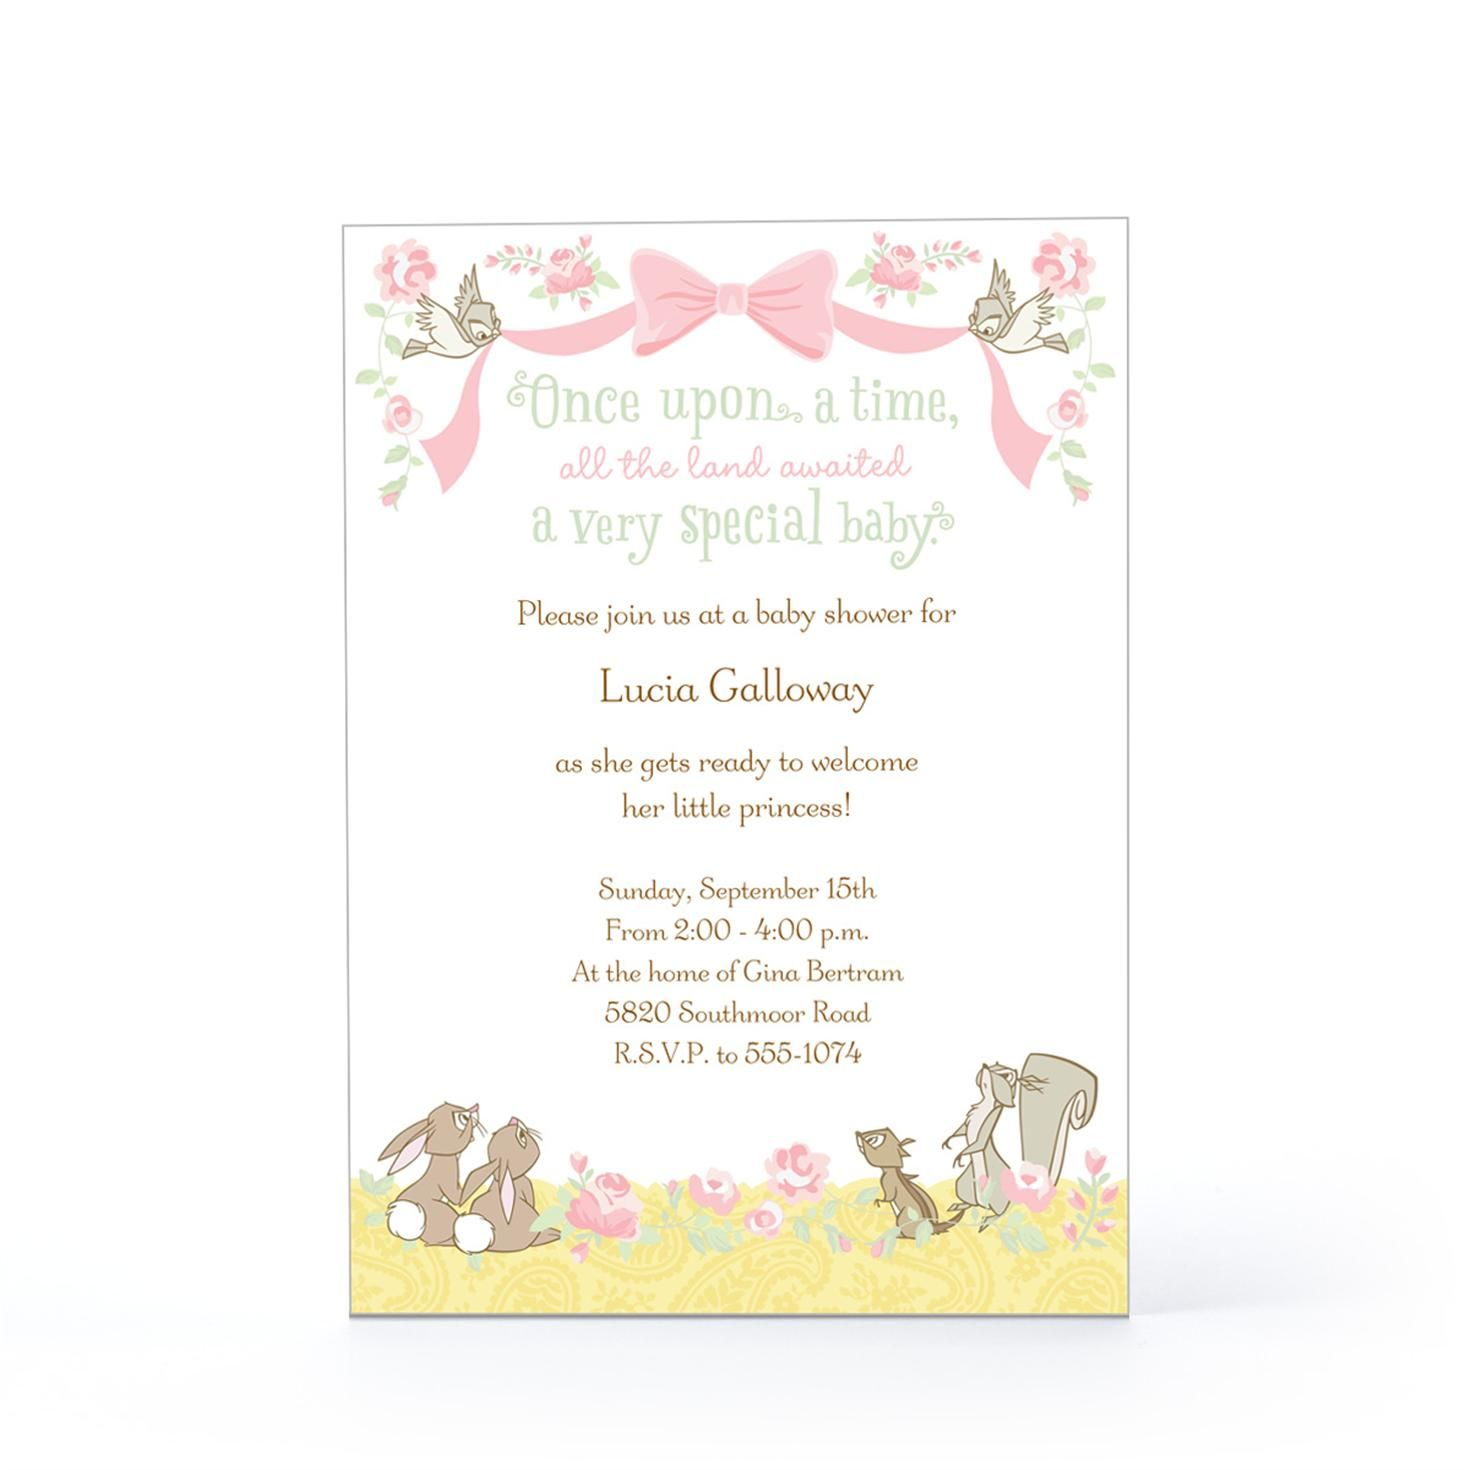 Disney forest animals baby invitation hallmark future disney forest animals baby invitation hallmark filmwisefo Choice Image